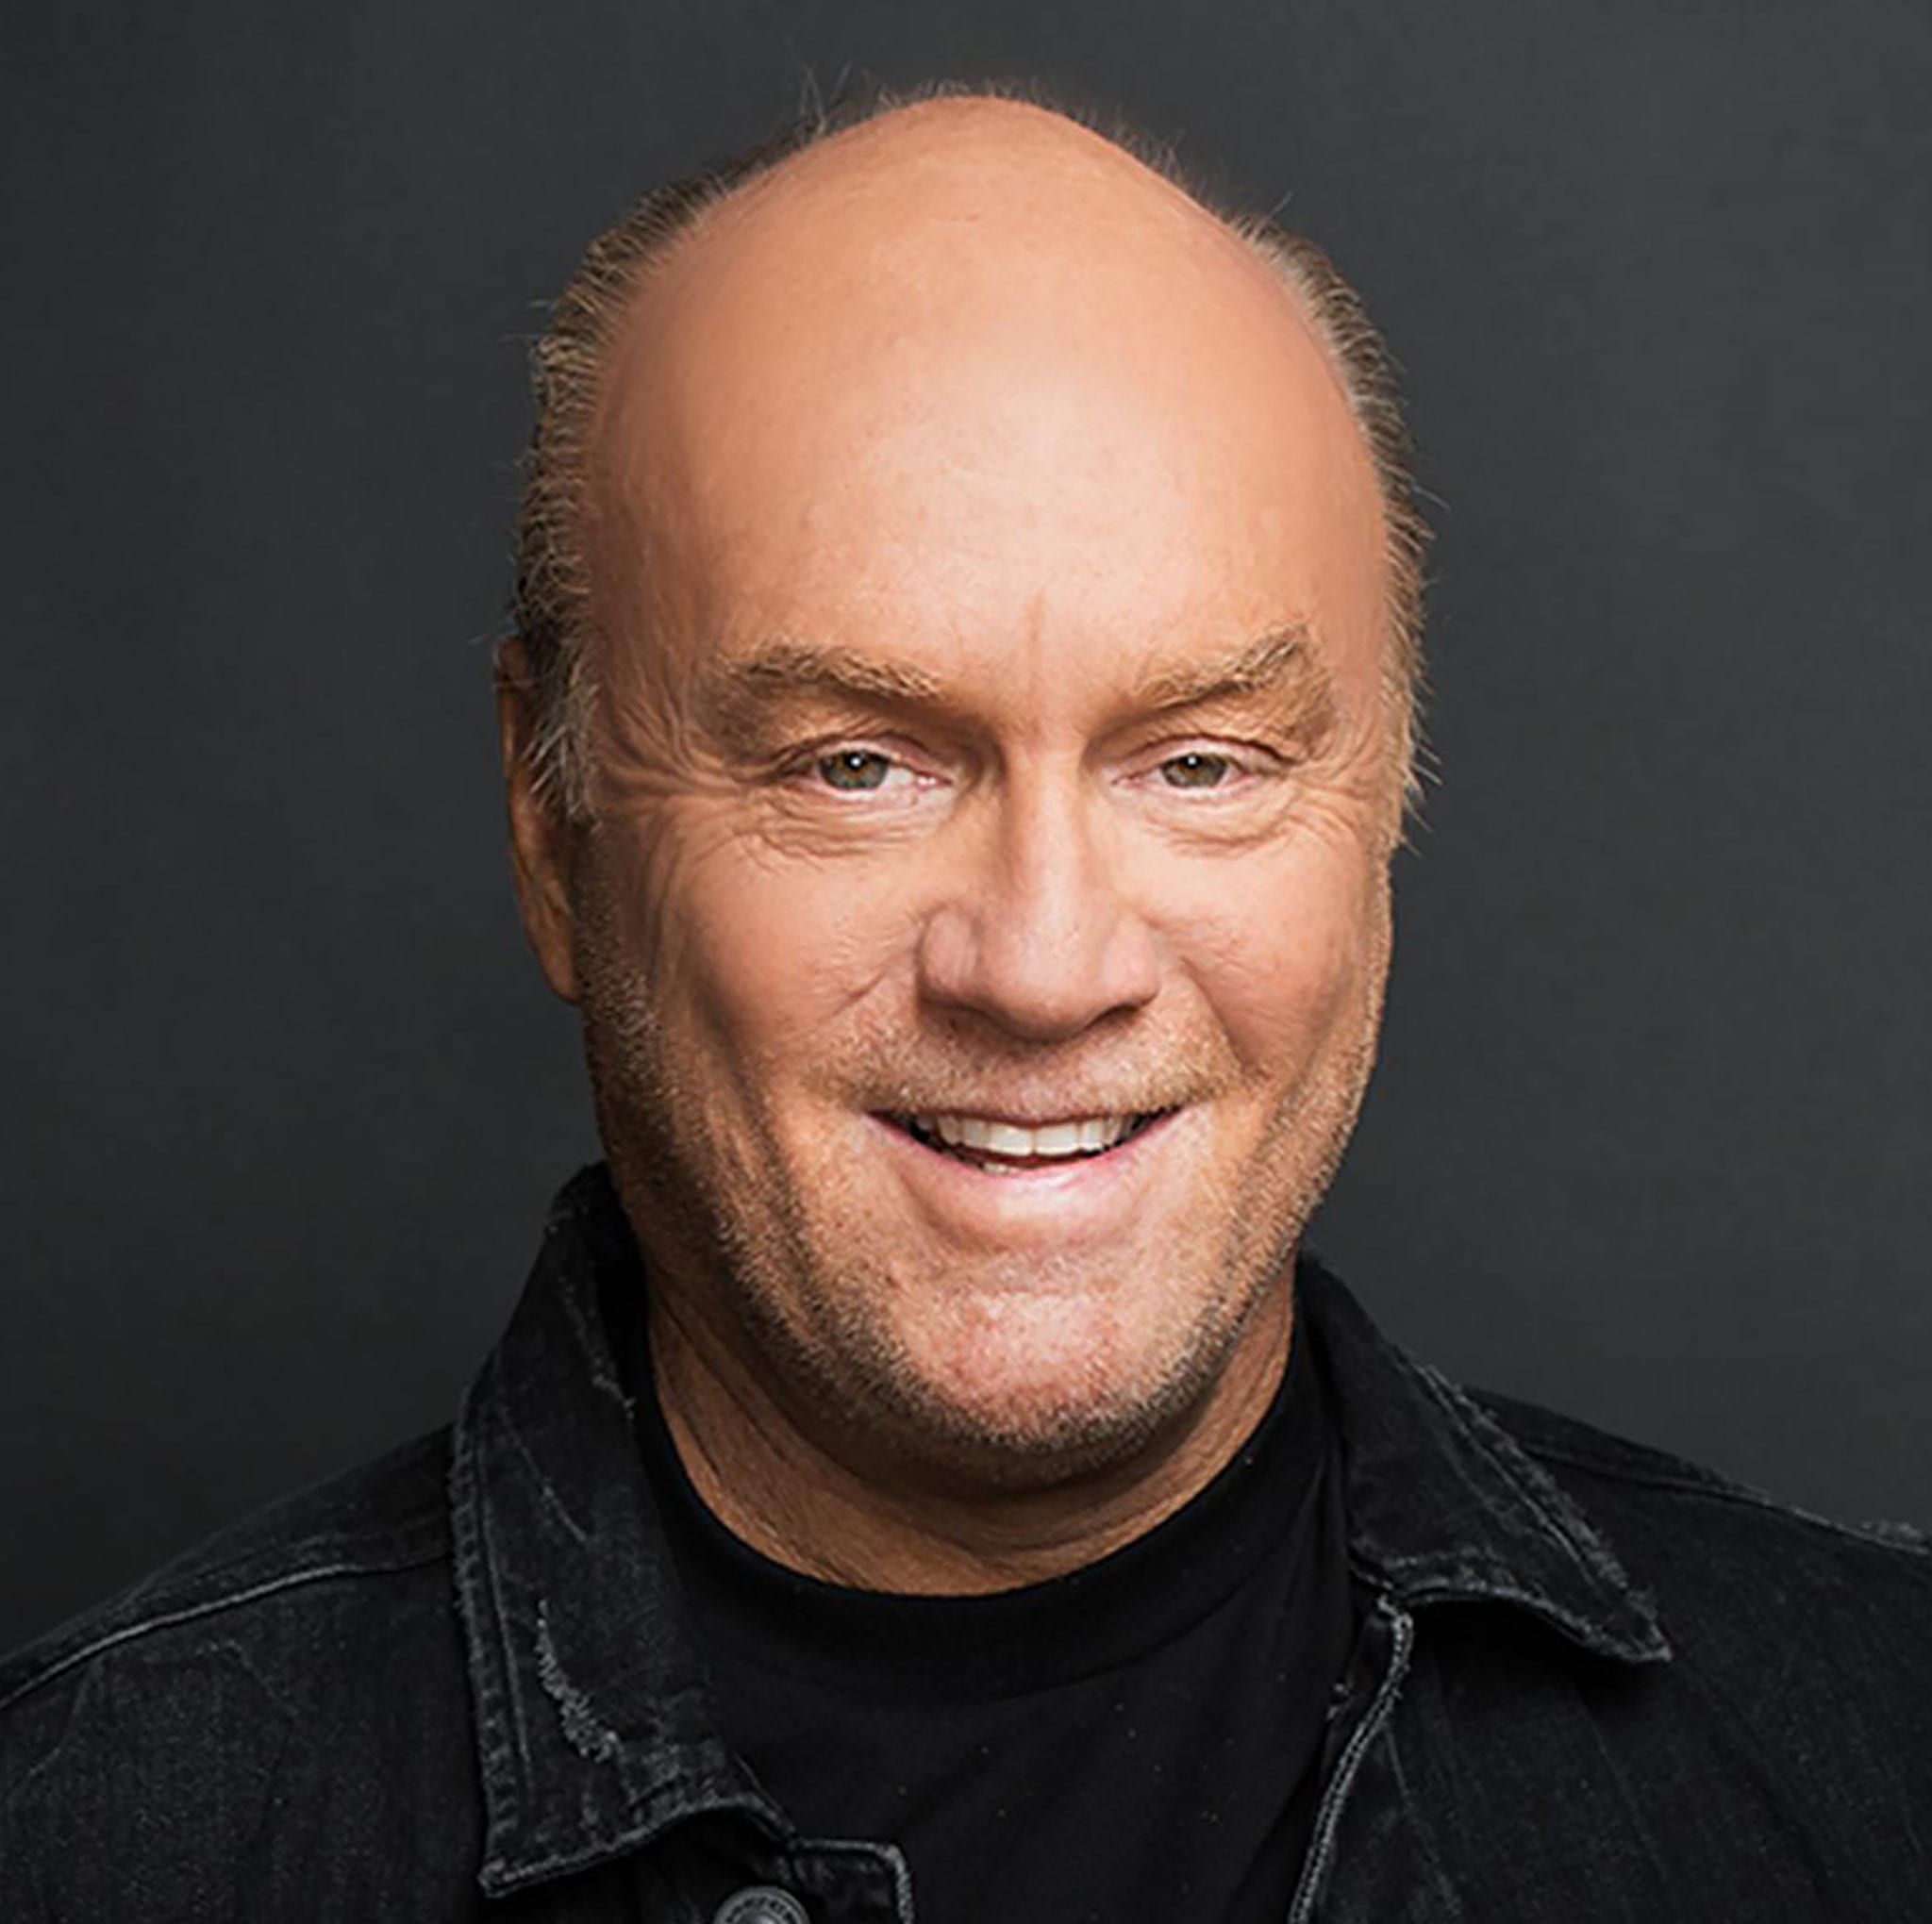 GREG LAURIE: A NEW BEGINNING